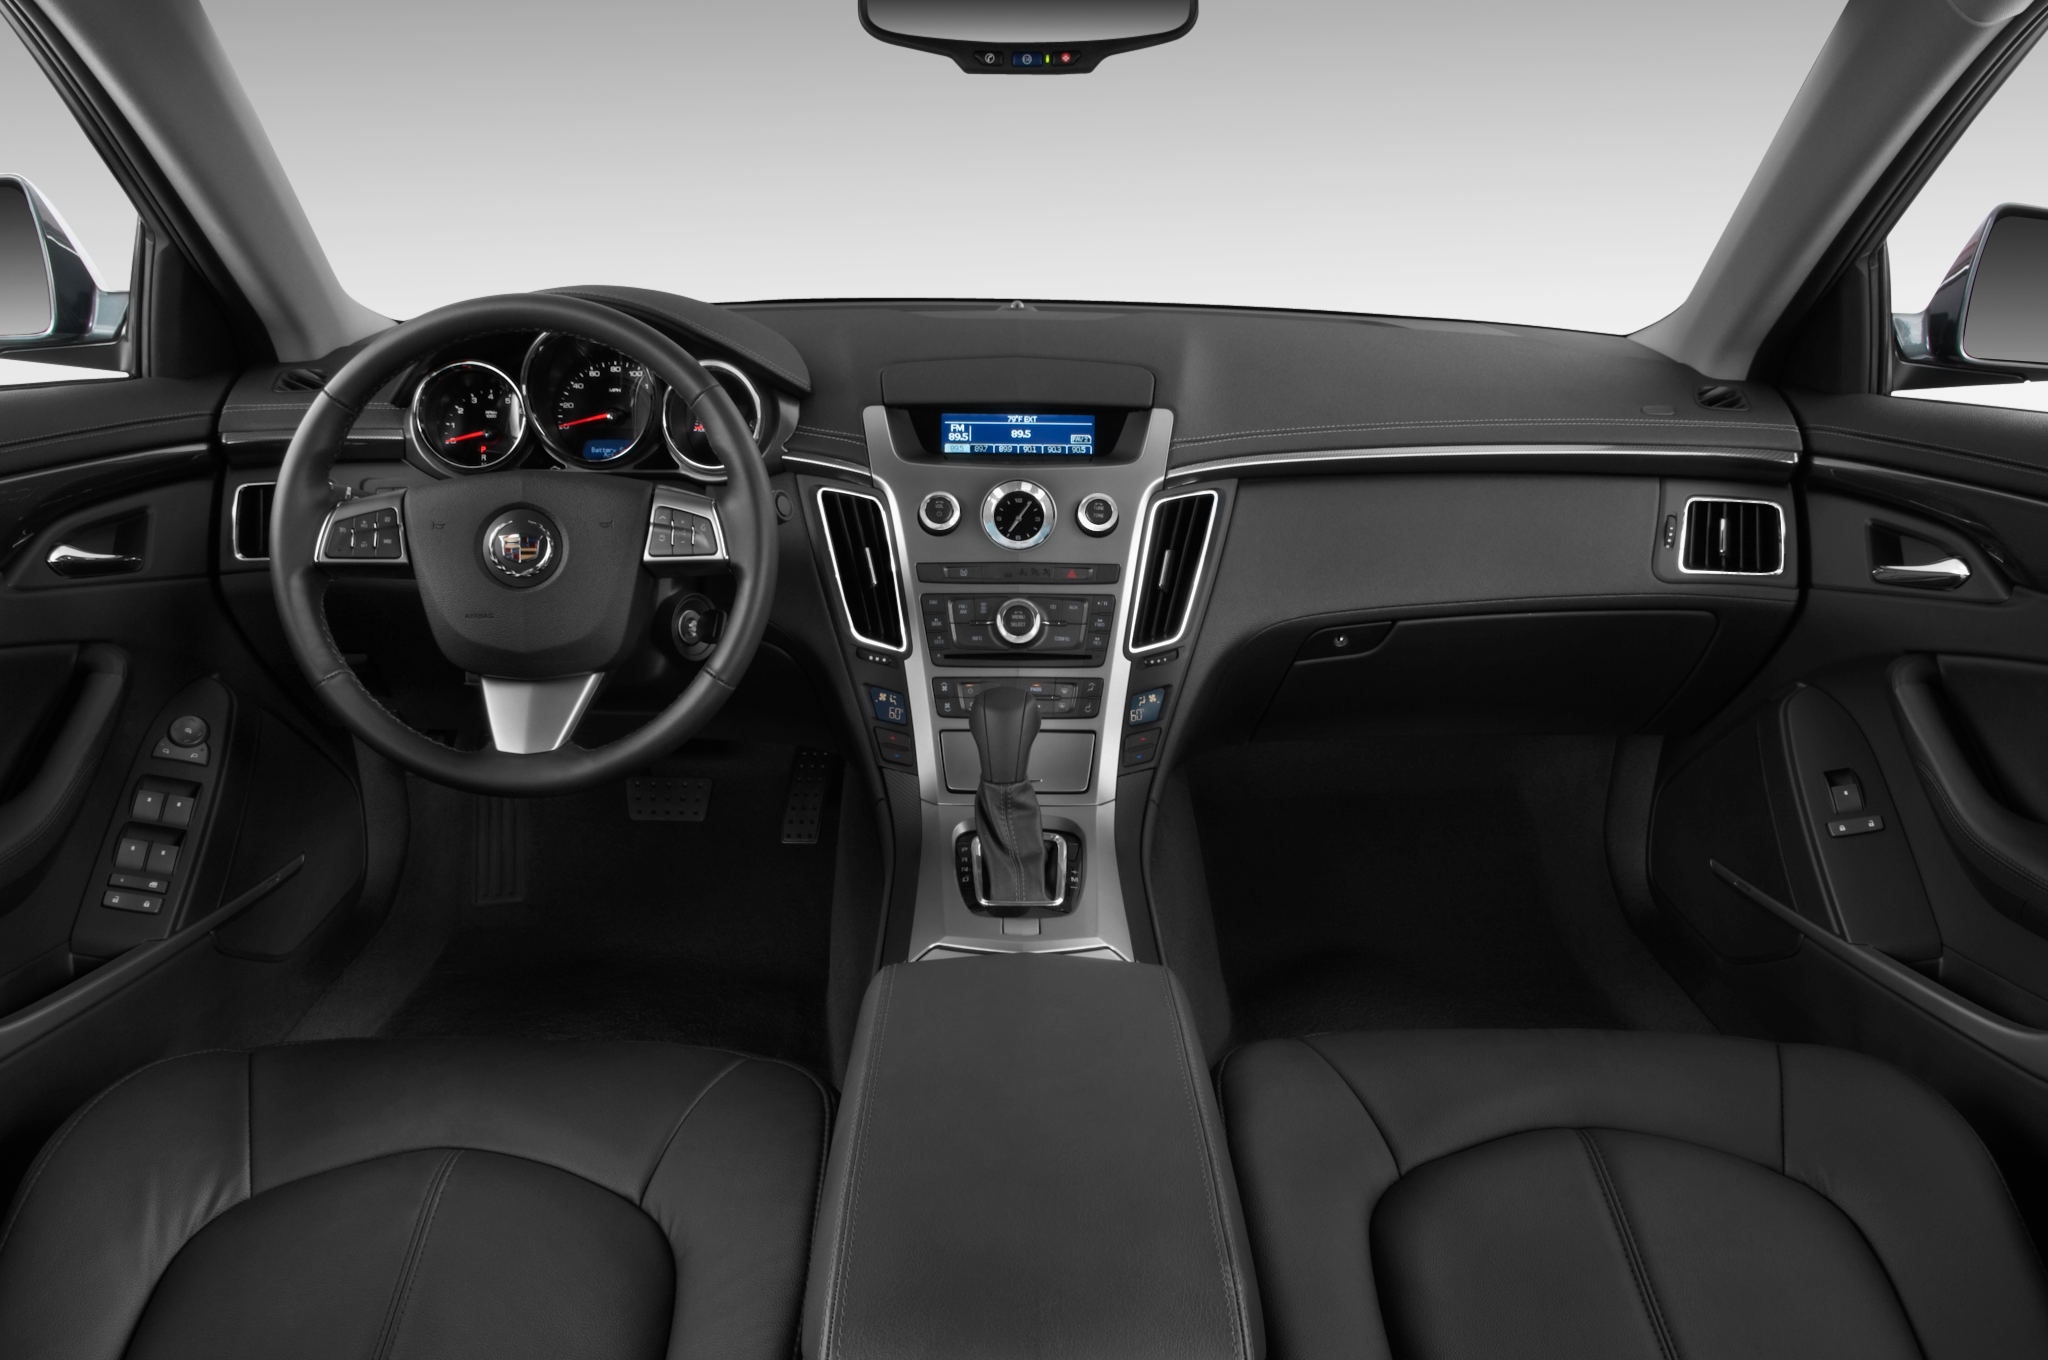 2012 cadillac cts gains touring package for non-v models